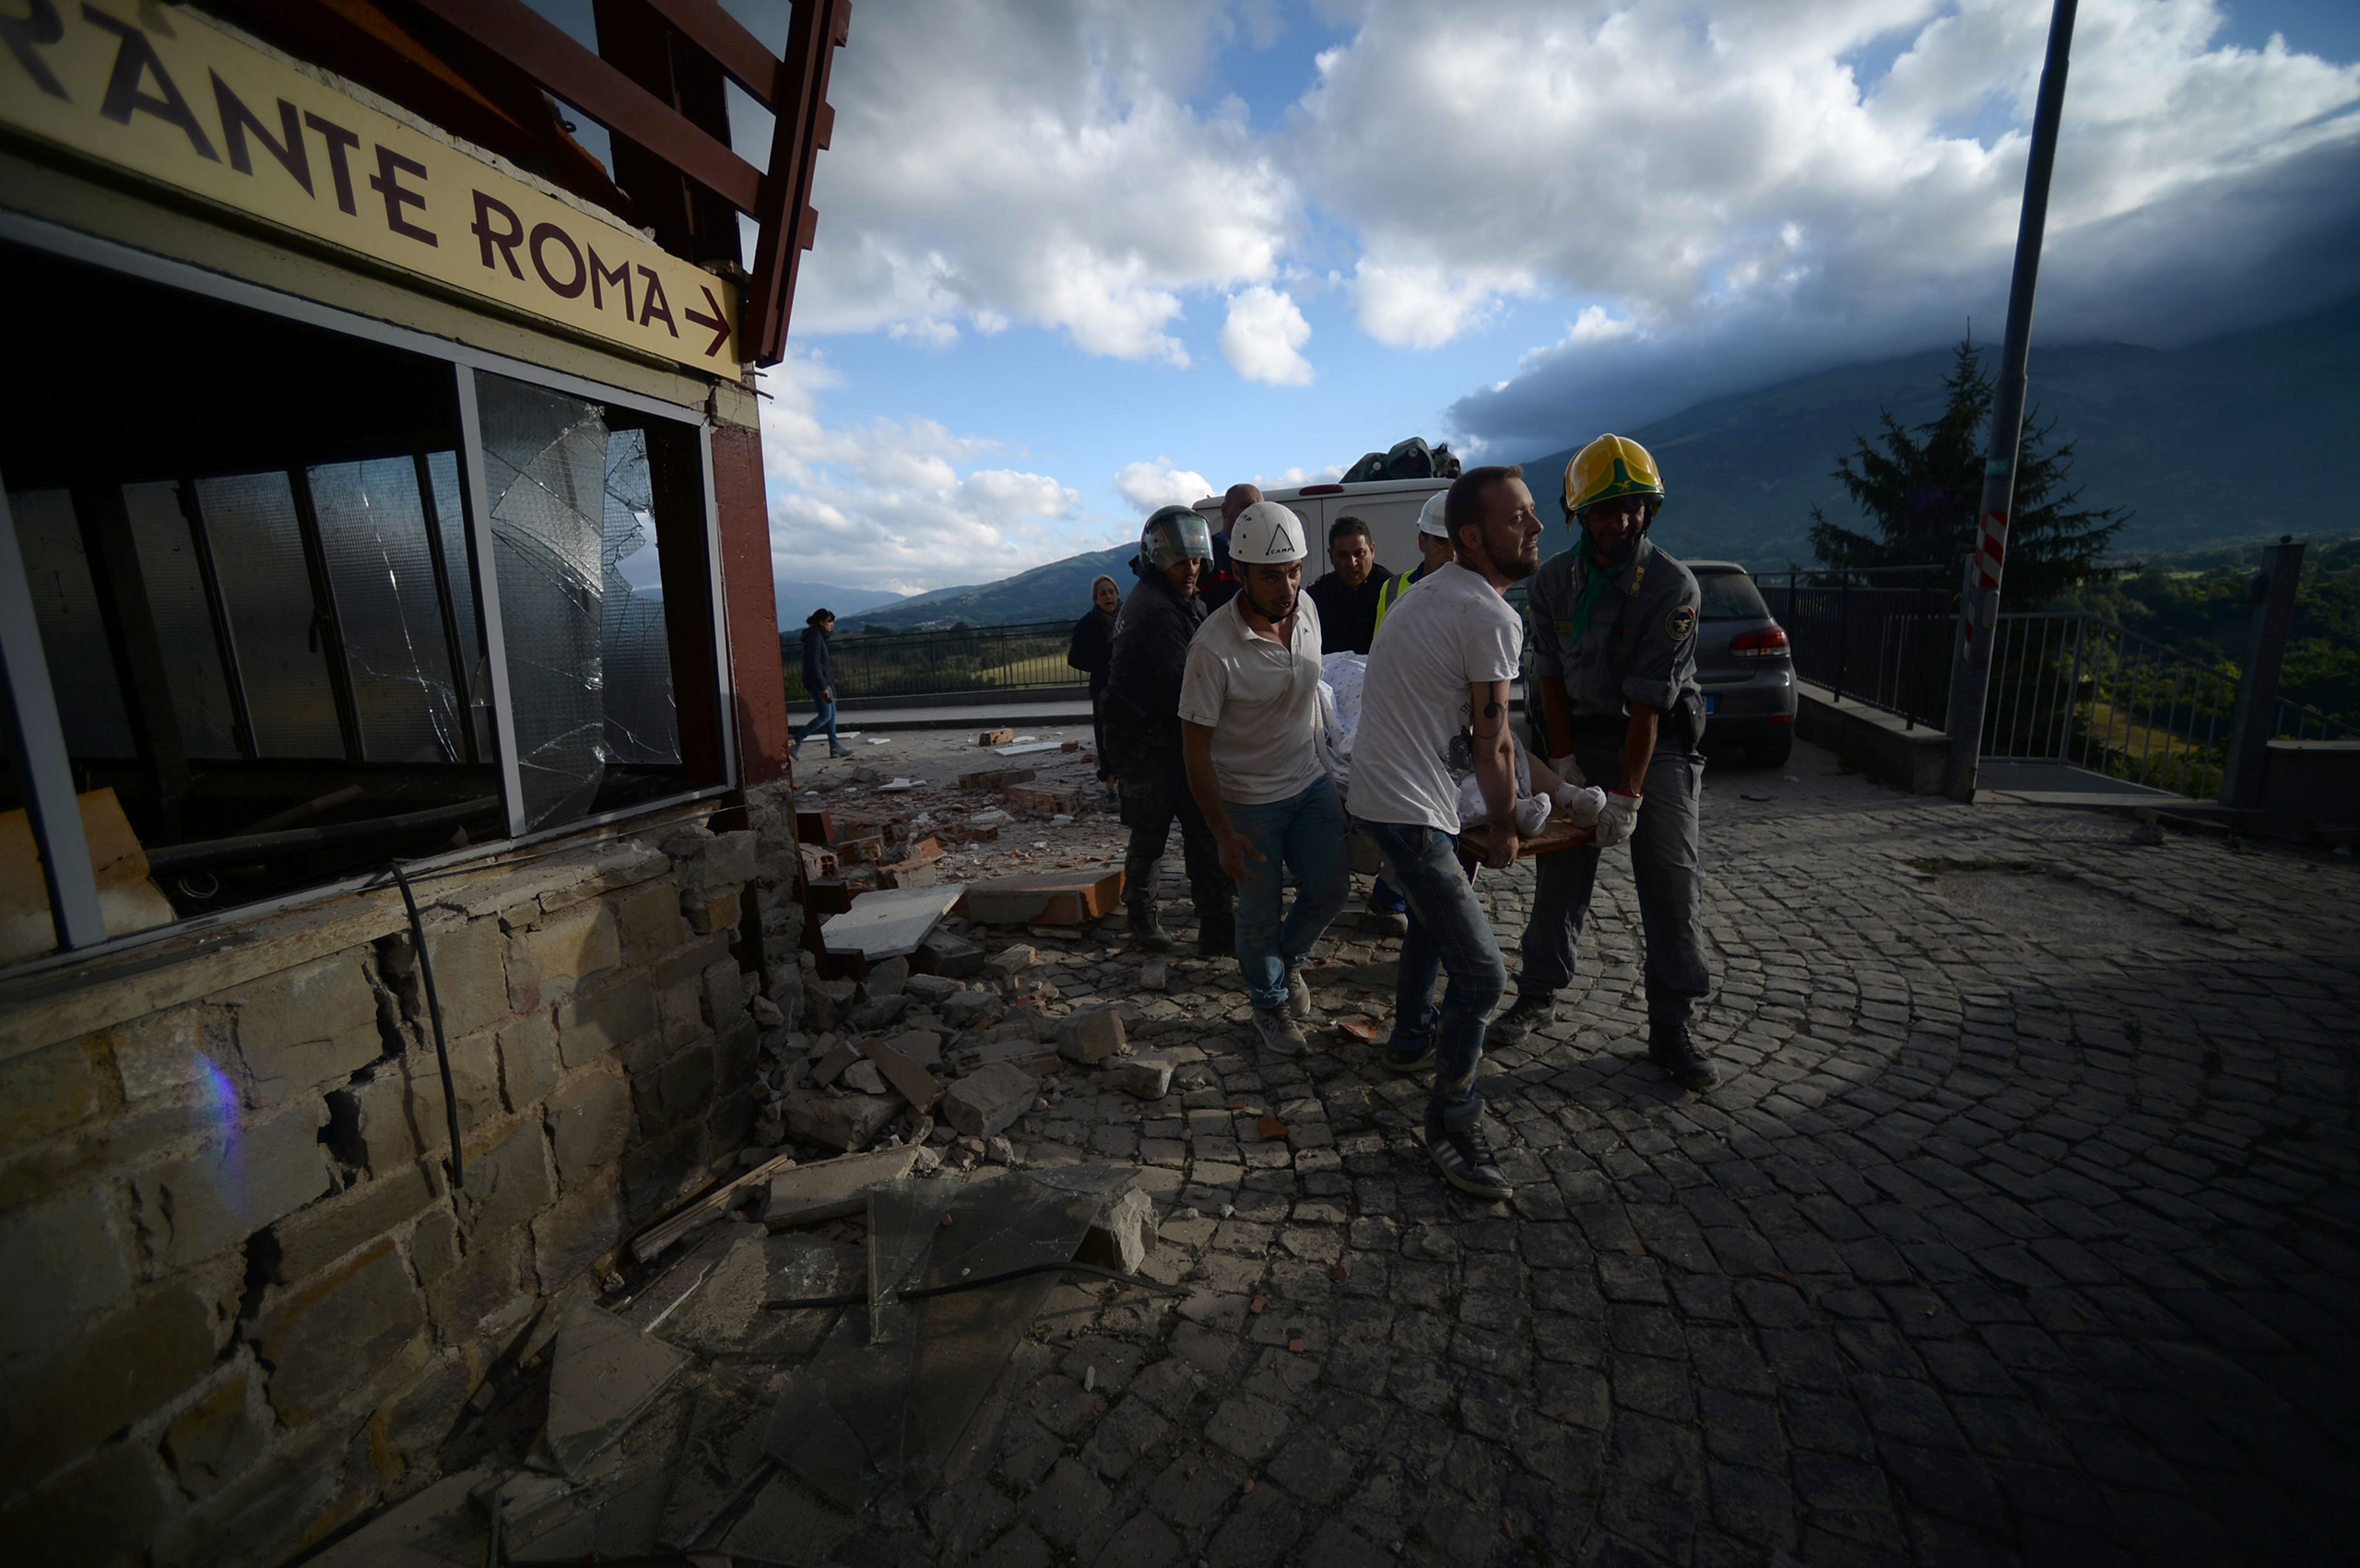 Rescuers carry a man on a stretcher in front of a damaged building after a strong earthquake hit central Italy, in Amatrice on Aug. 24, 2016.